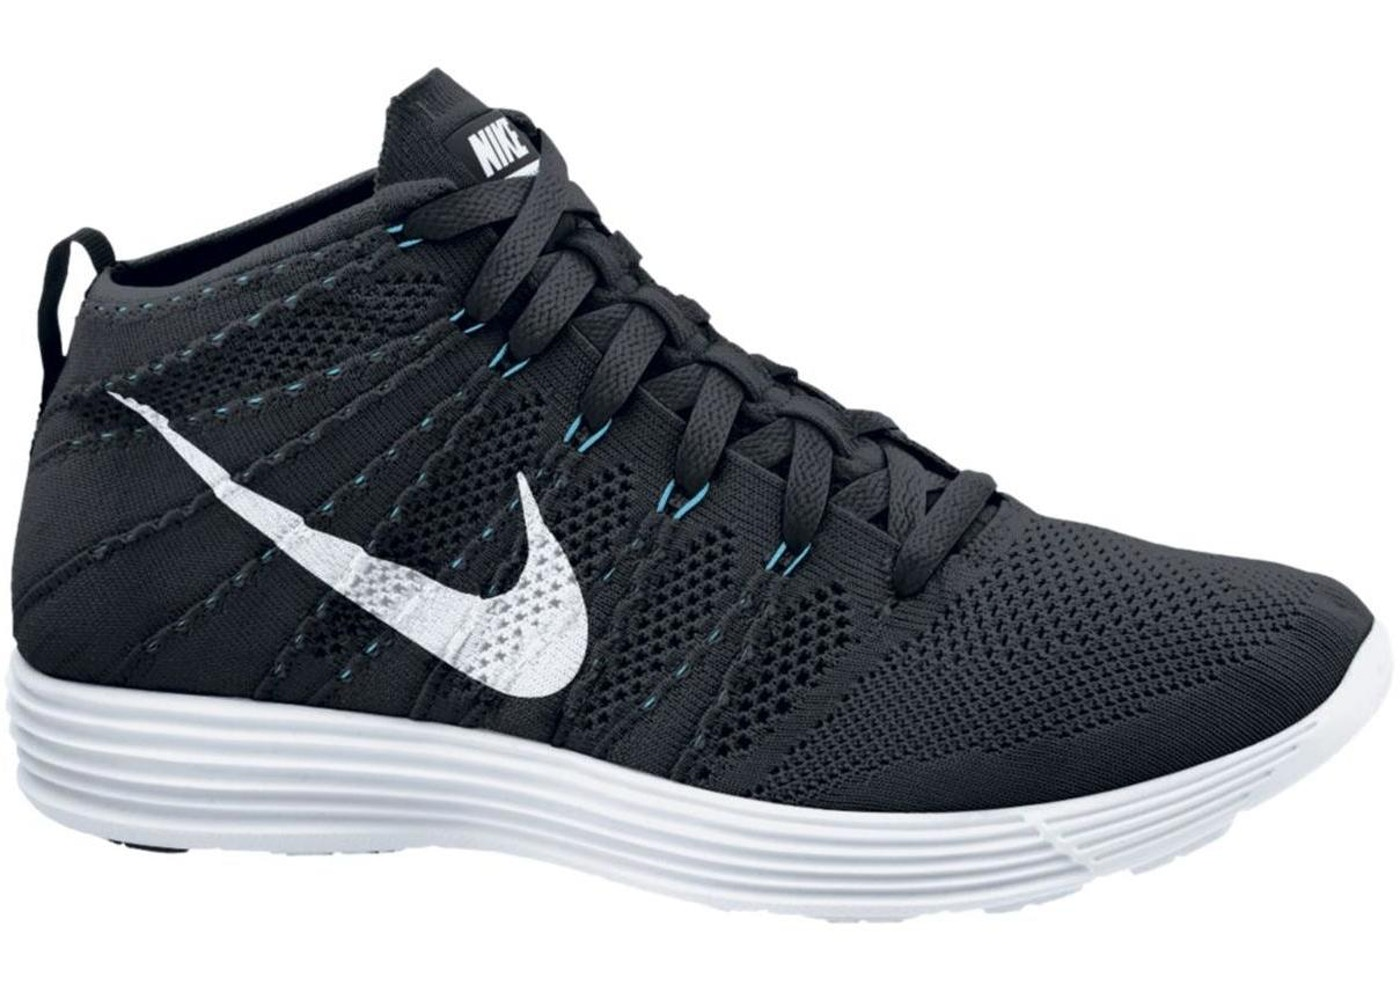 f83e07fbcbf0 Sell. or Ask. Size  11.5. View All Bids. Nike Lunar Flyknit Chukka Black ...